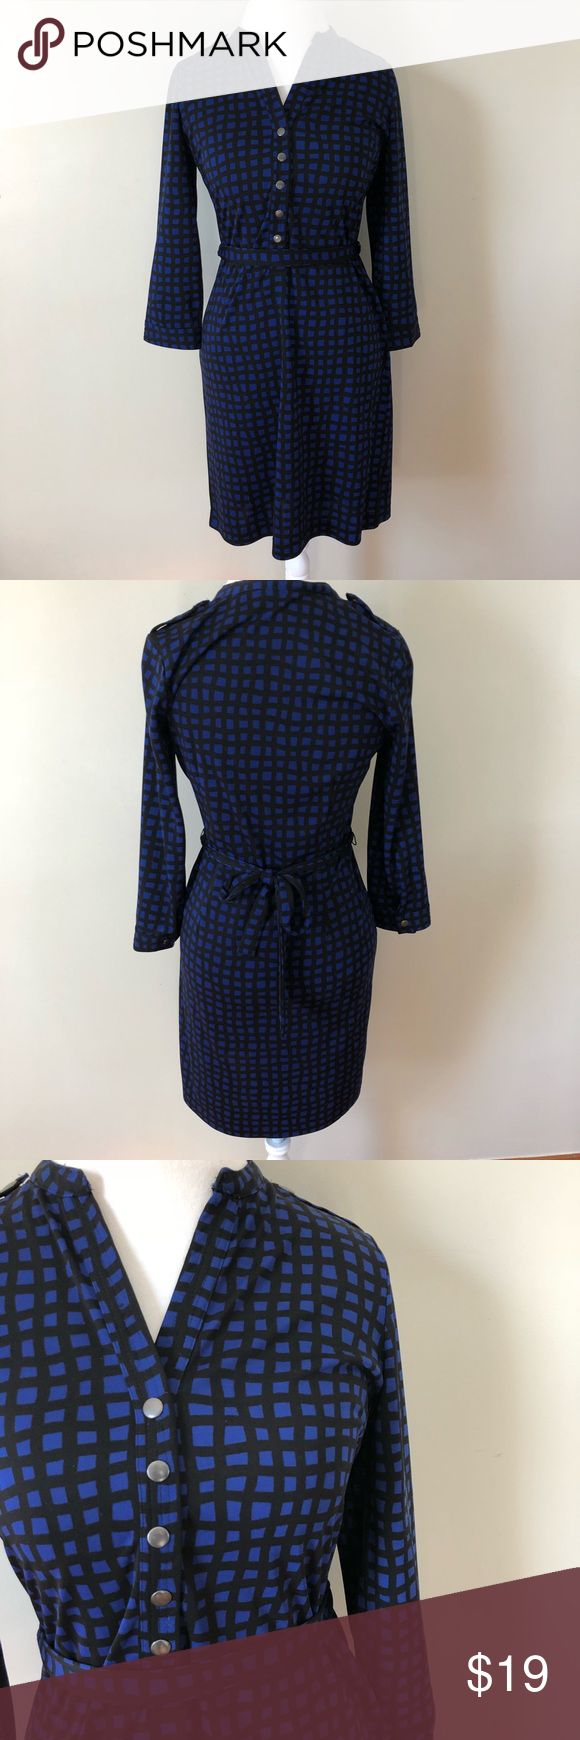 """The Limited Dress The Limited Dress. Perfect for casual wear or for work.  Size- Medium  Shoulder to hem- 35.5"""" Comfortable thick fabric. Used in great condition. Make me an offer! The Limited Dresses Midi"""